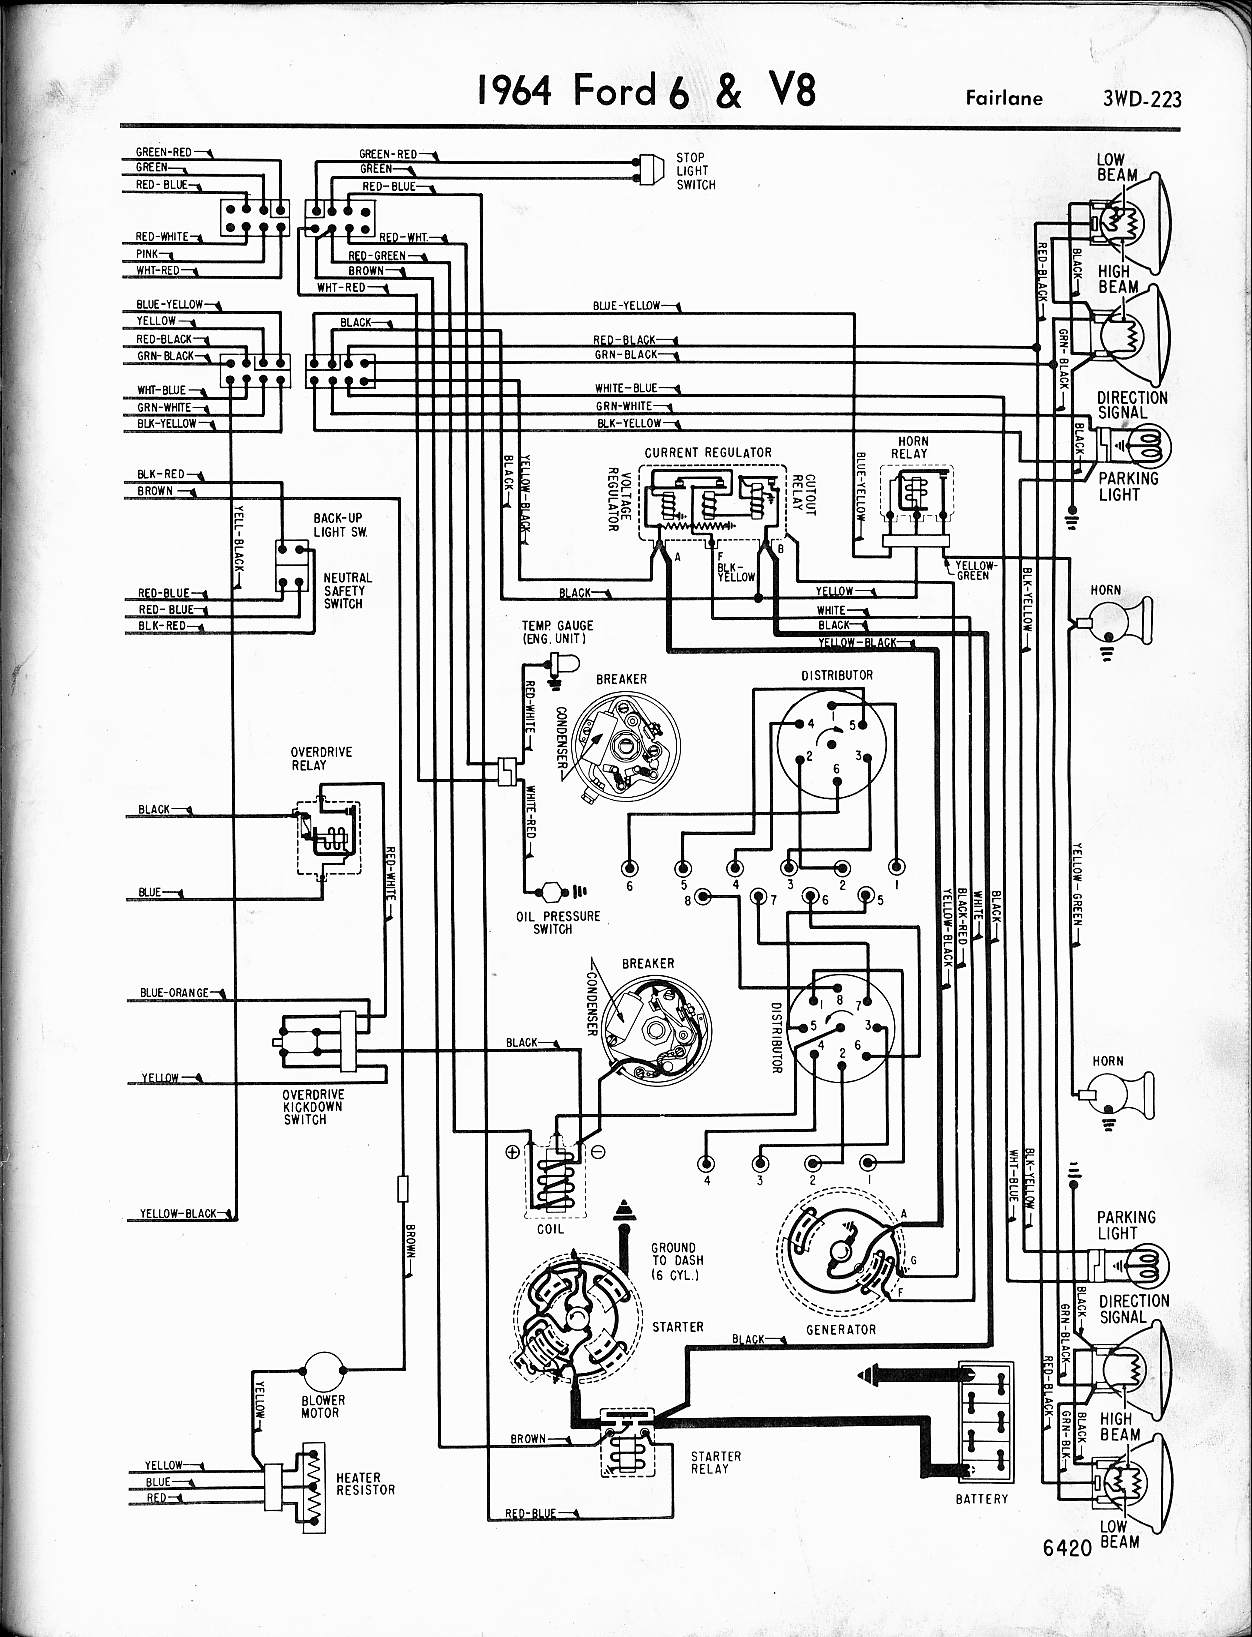 MWire5765 223 1964 ford f100 wiring diagram 1966 ford truck wiring diagram 65 ford f100 wiring diagram at webbmarketing.co